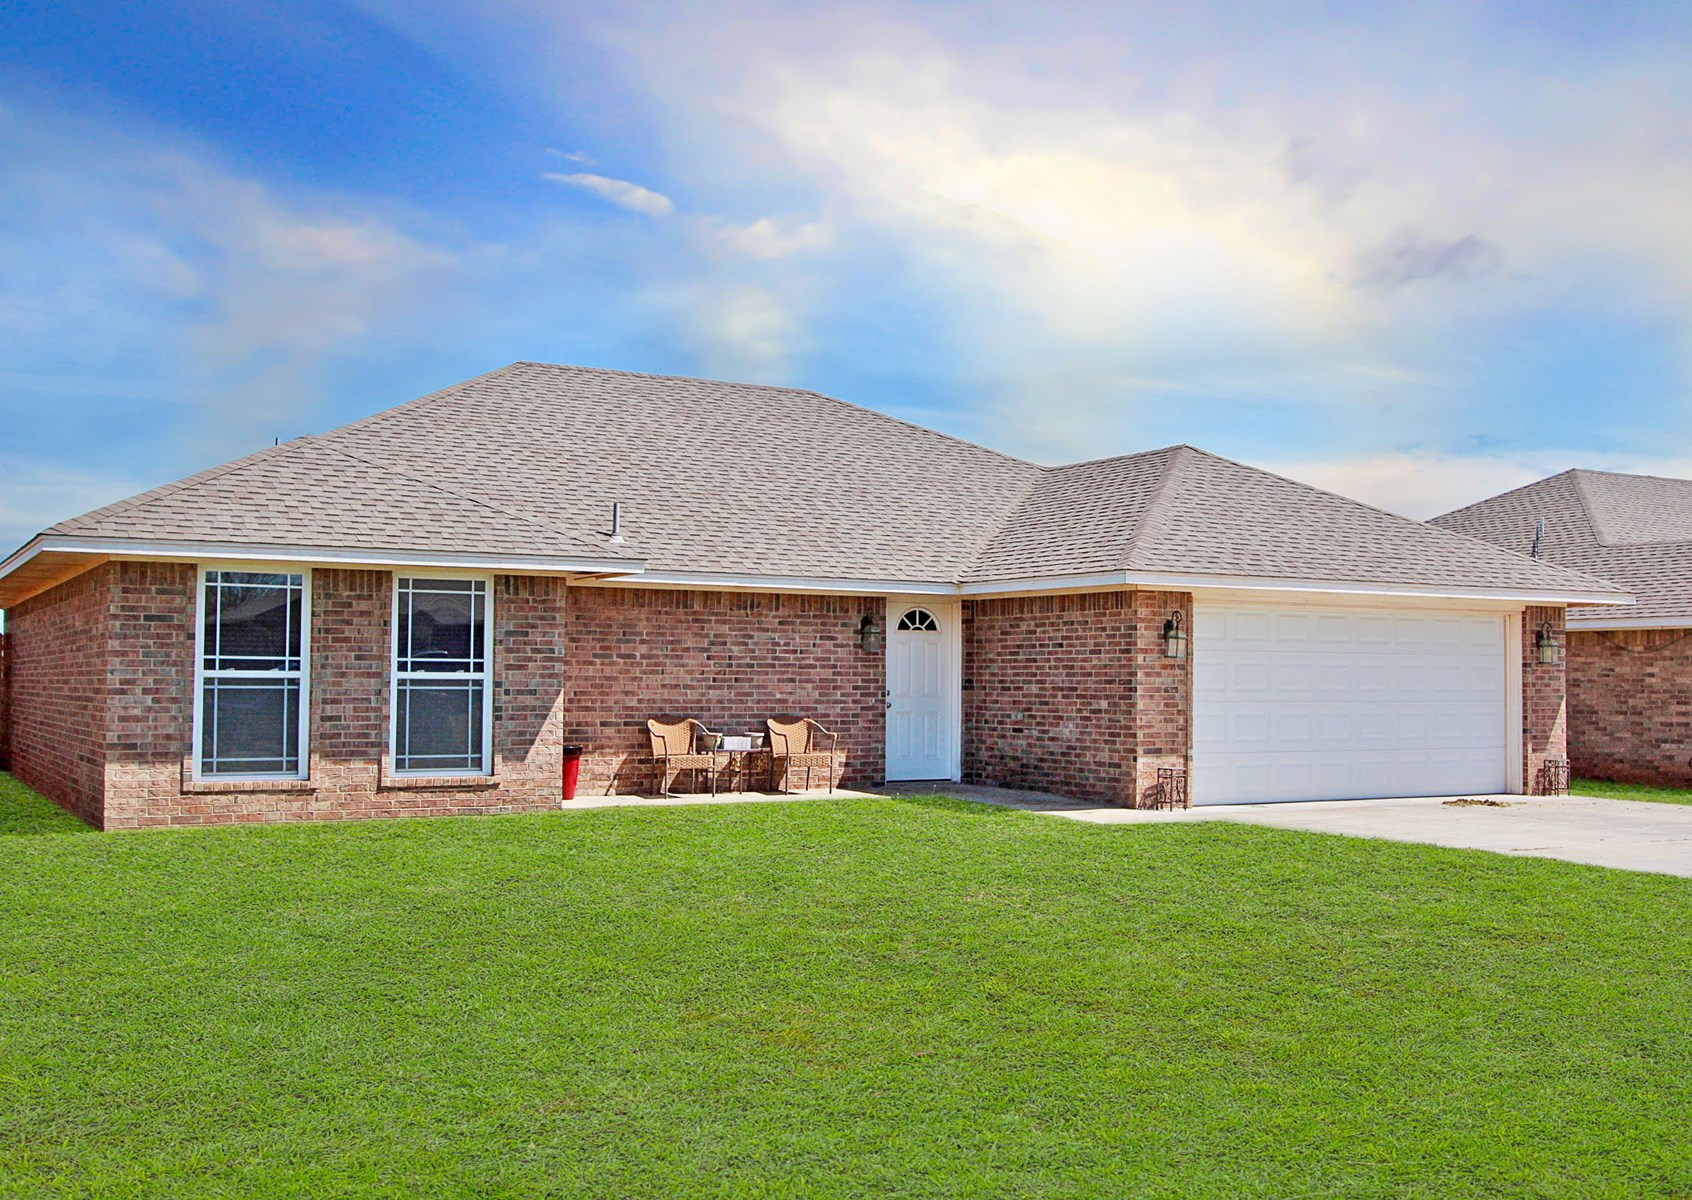 HOME FOR SALE IN ELK CITY WITH 3 BEDROOMS 2 BATHS